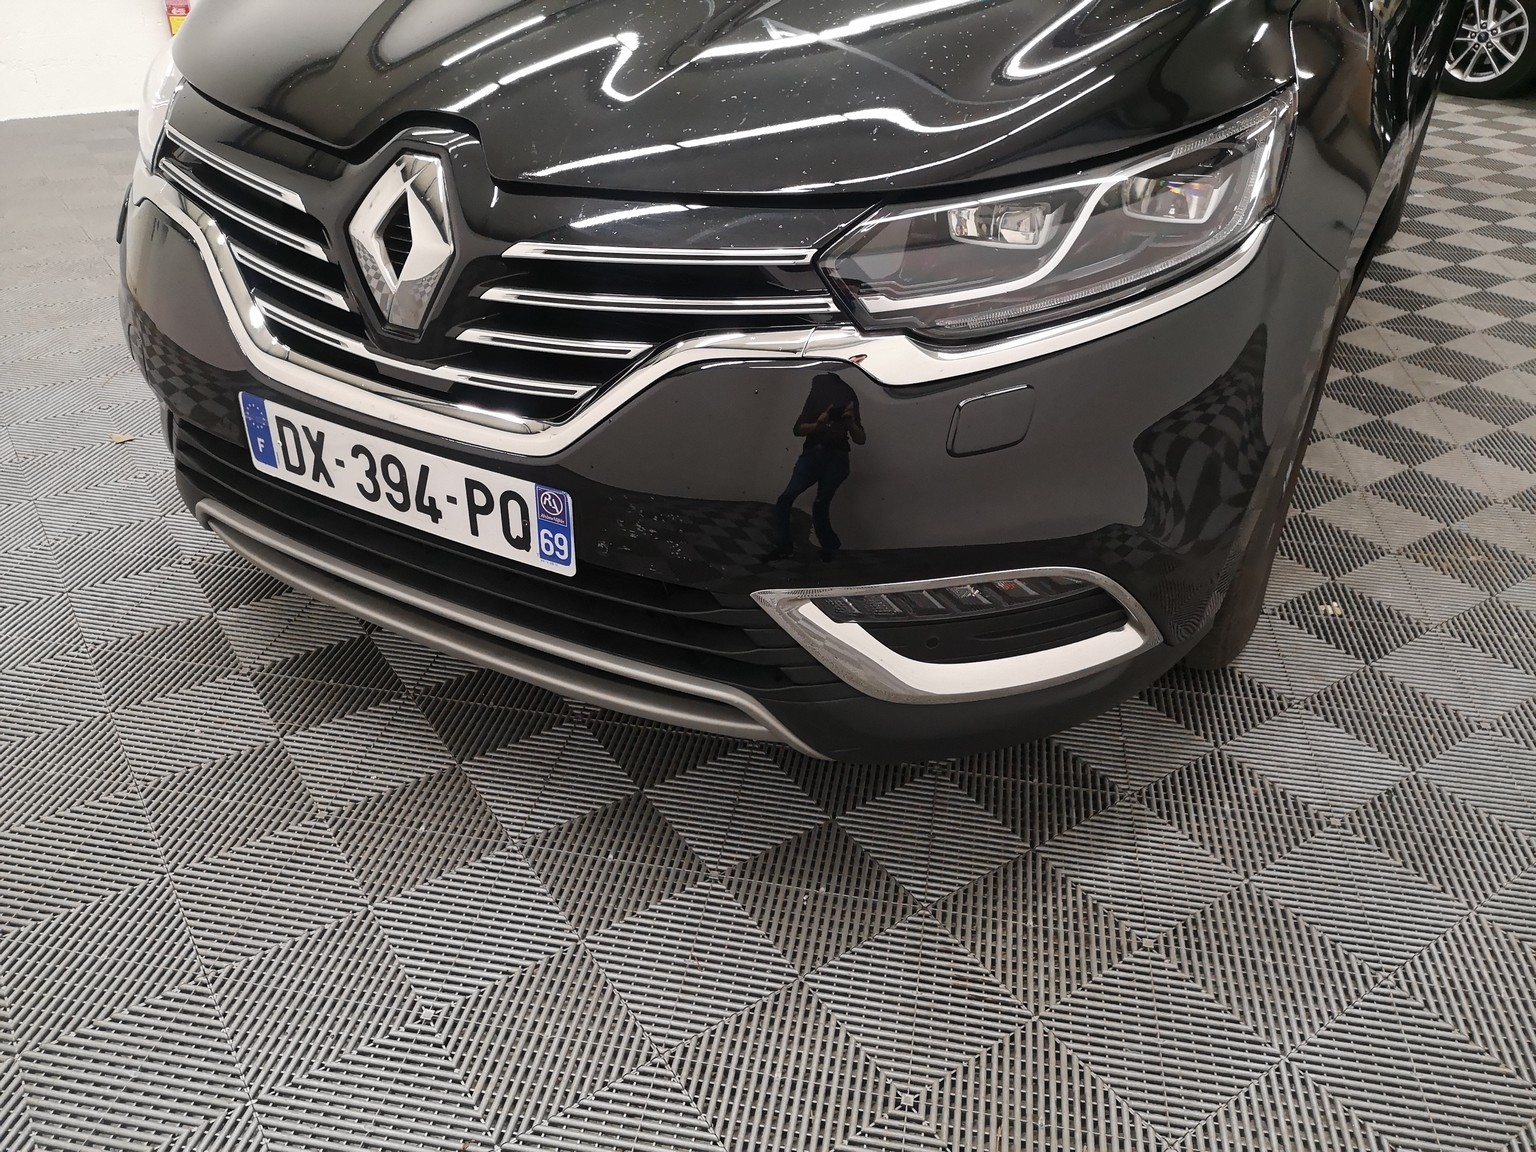 RENAULT ESPACE V dCi 160 Energy Twin Turbo Intens EDC d'occasion